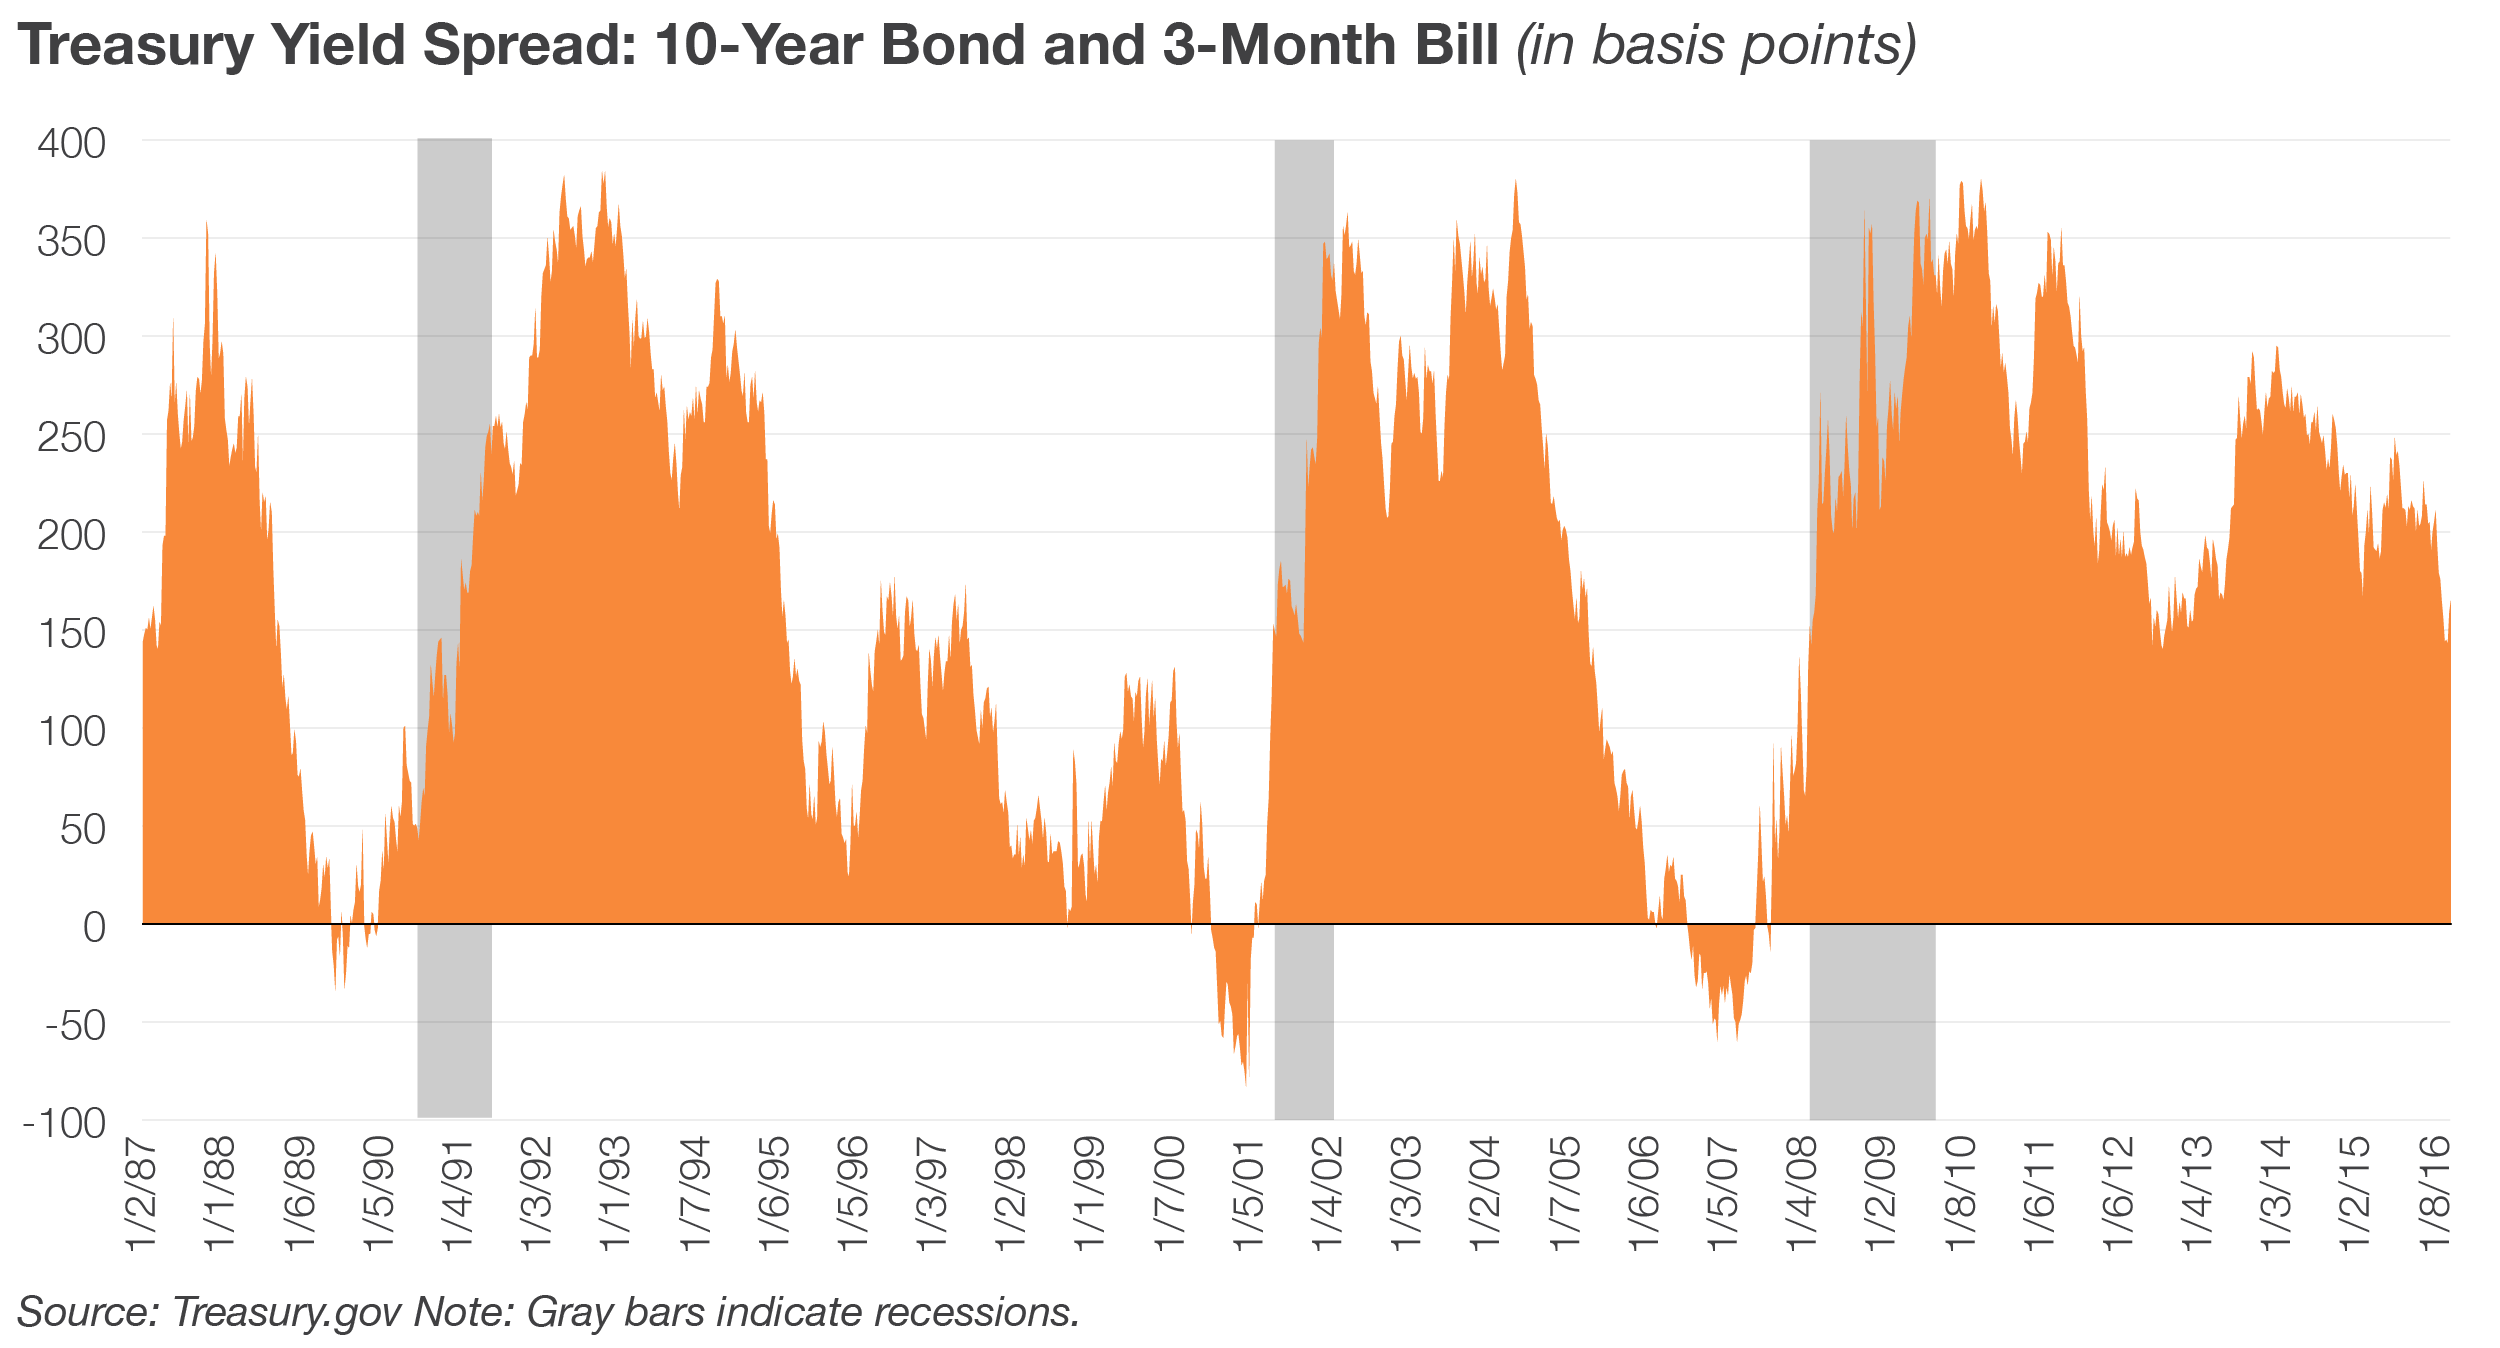 Treasury Yield Spread: 10-Year Bond and 3-Month Bill (in basis points)